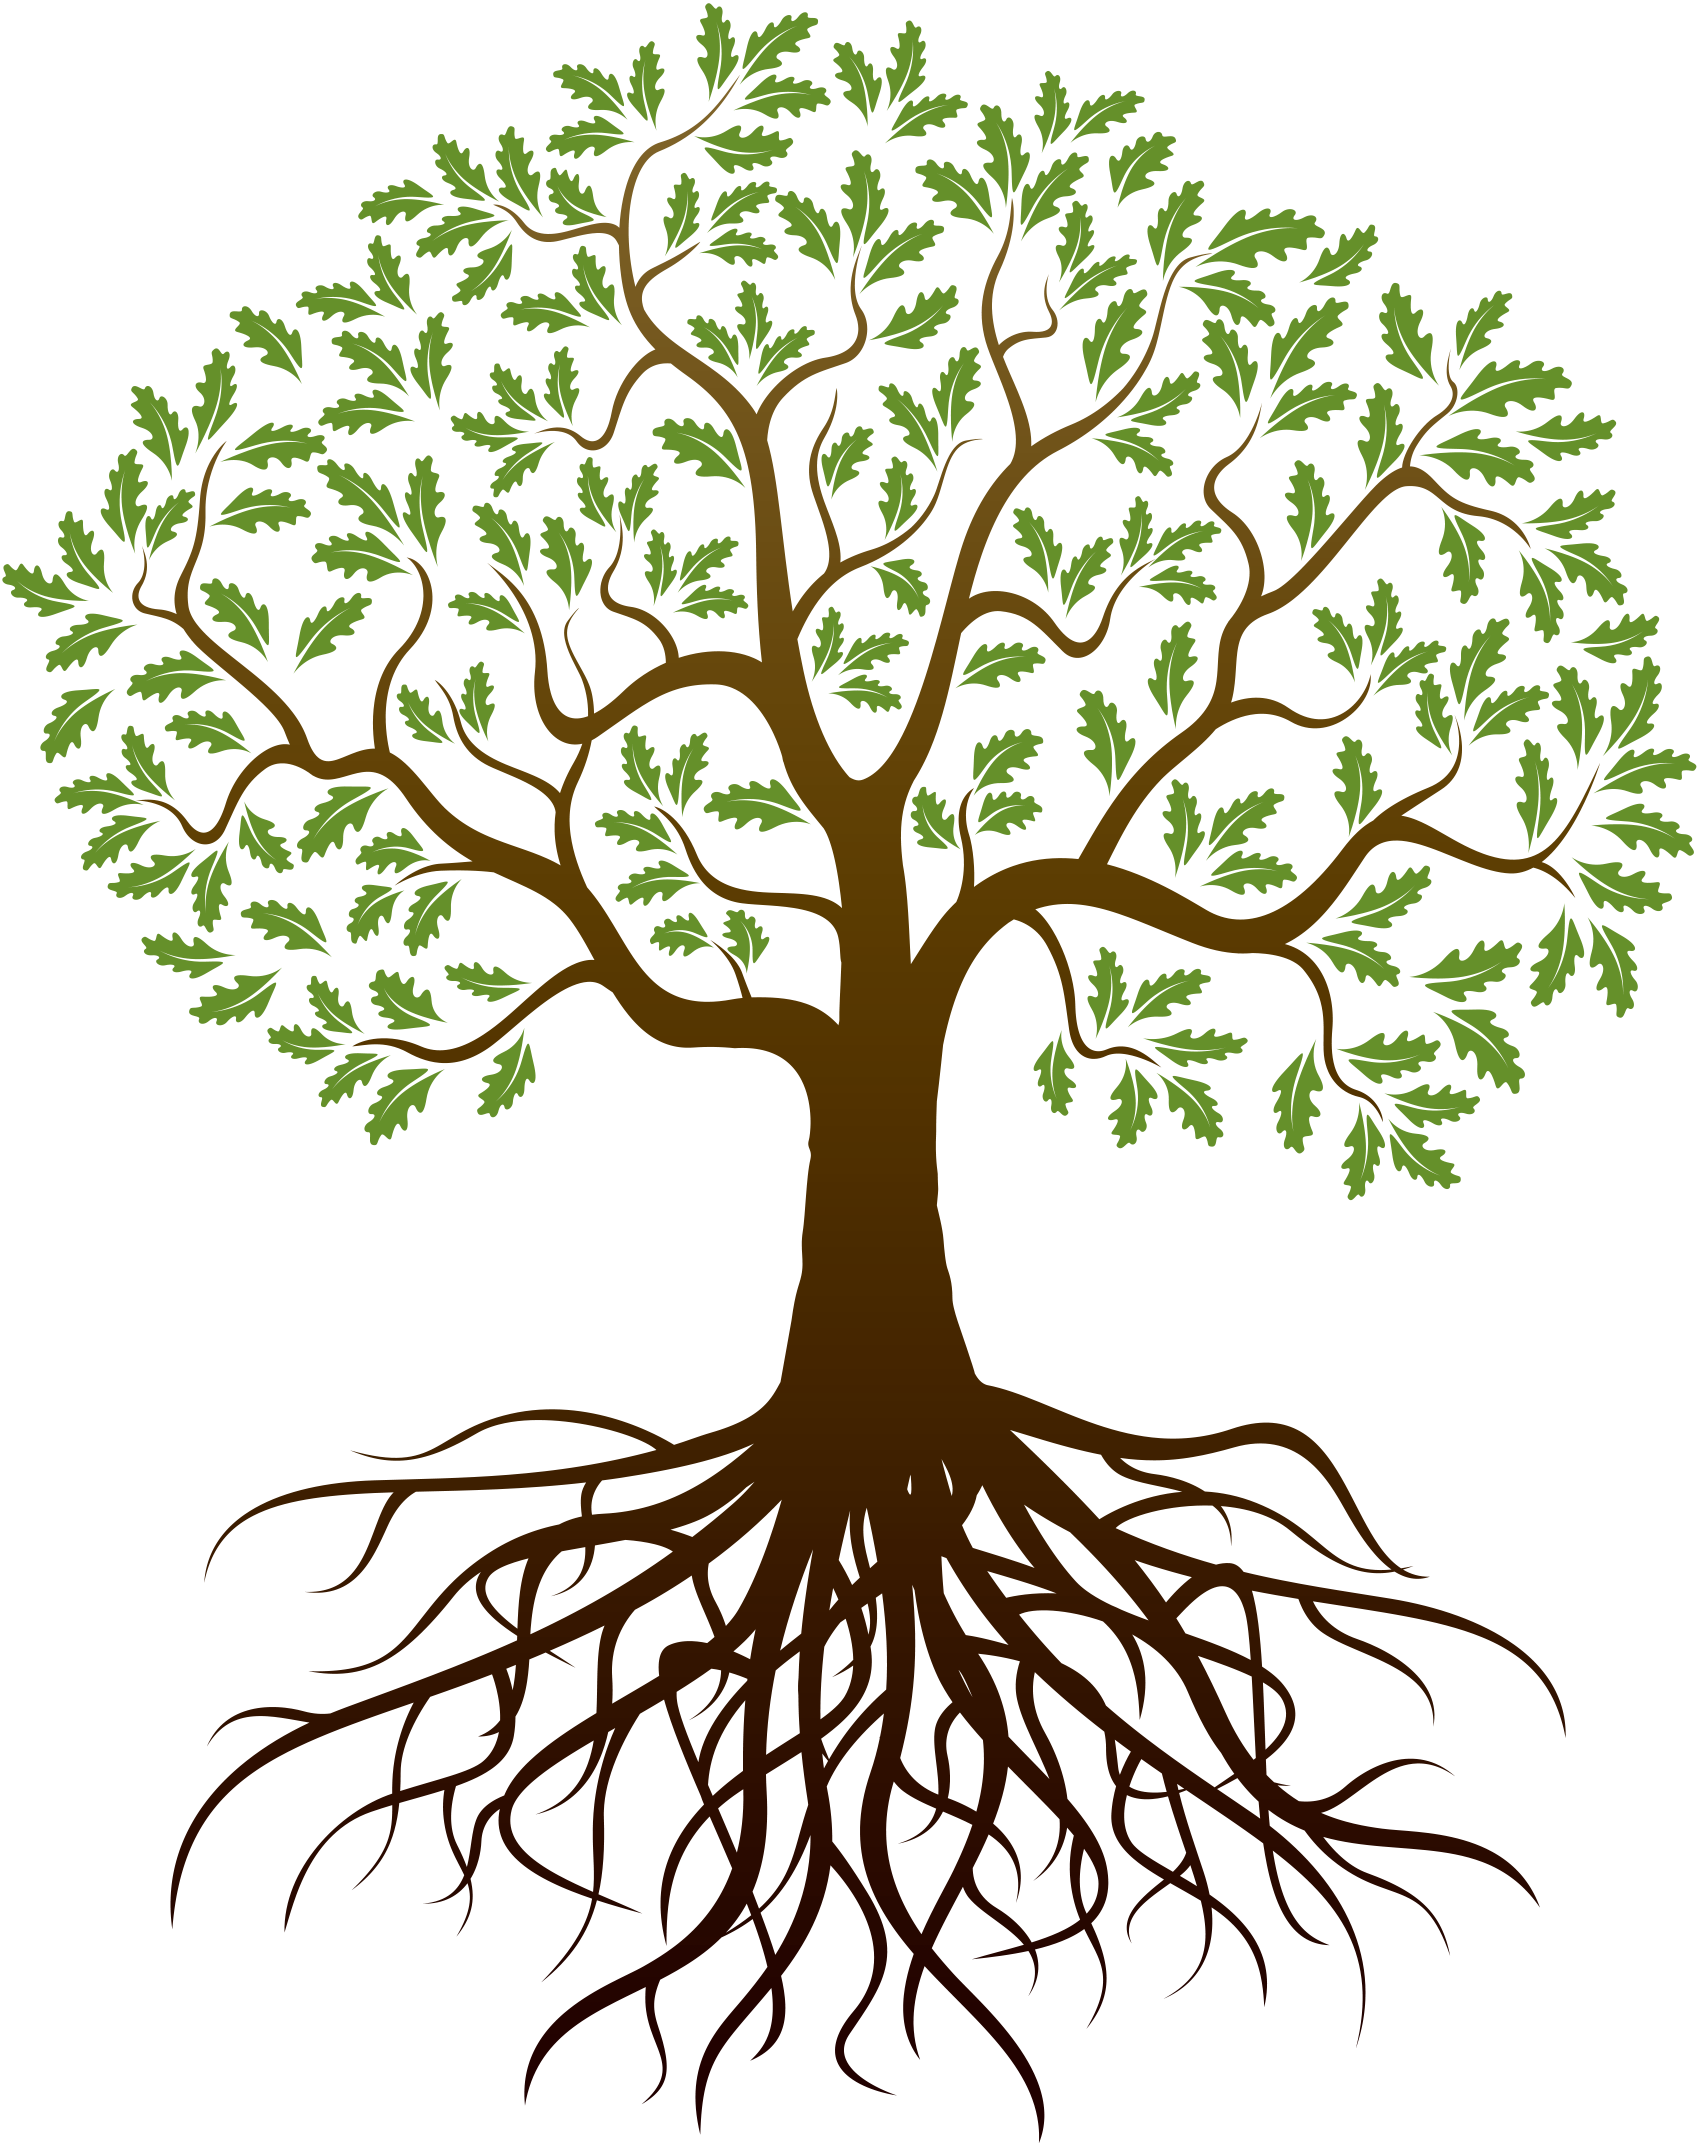 Family Tree Png & Free Family Tree.png Transparent Images ...